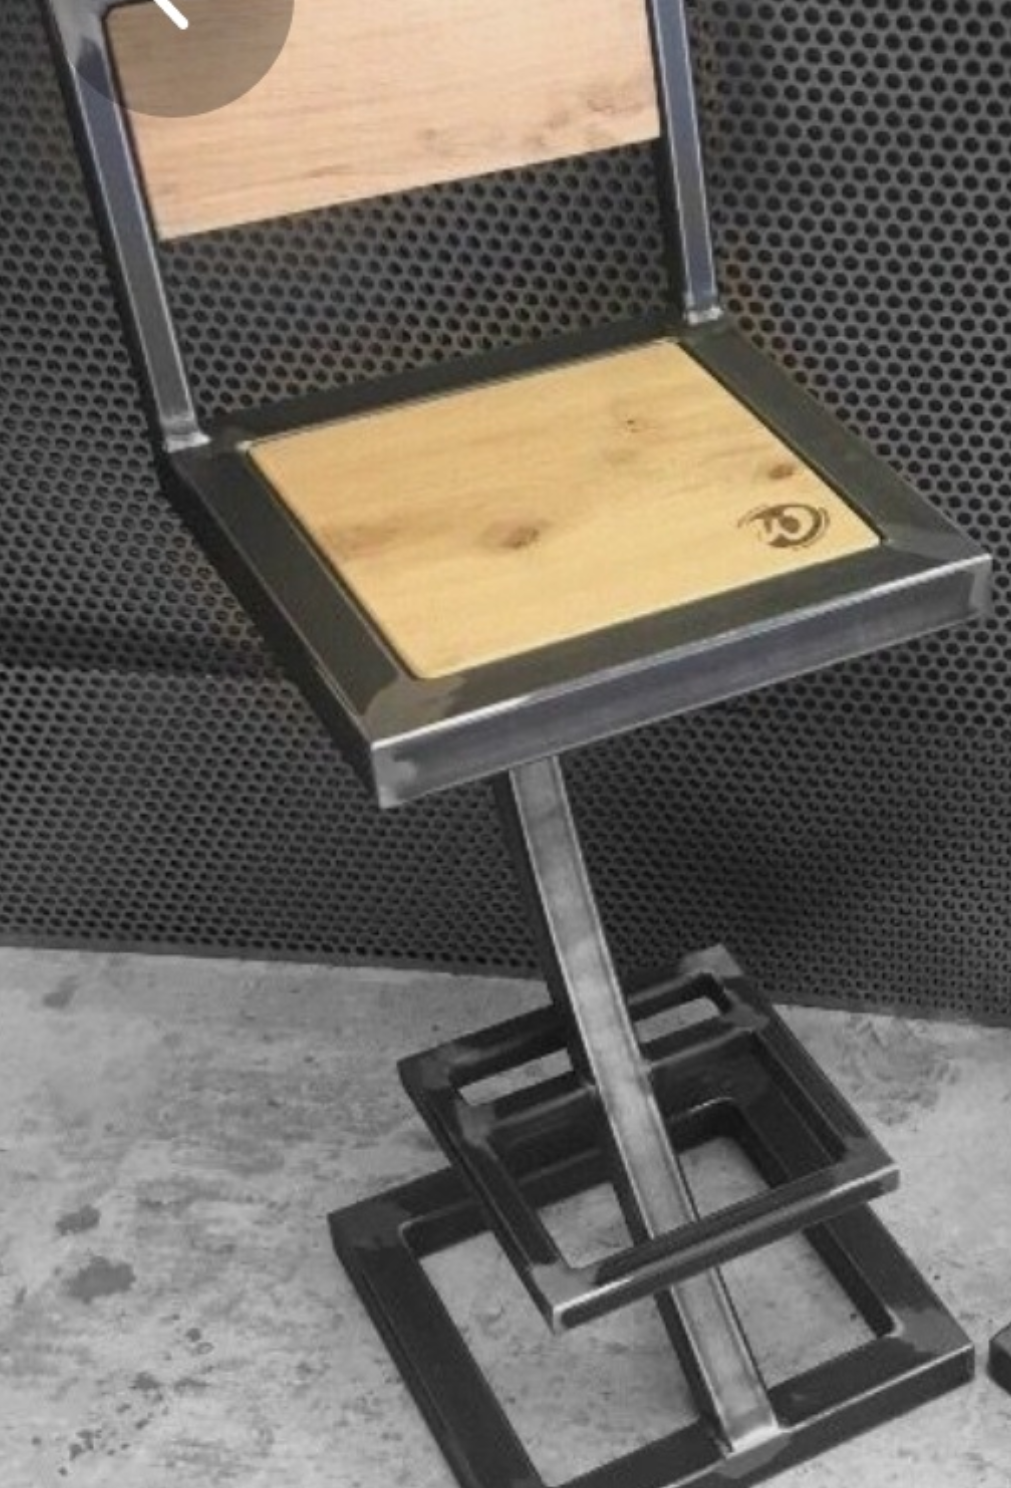 Screenshot_2020-04-24-10-46-38-198_com.miui.gallery